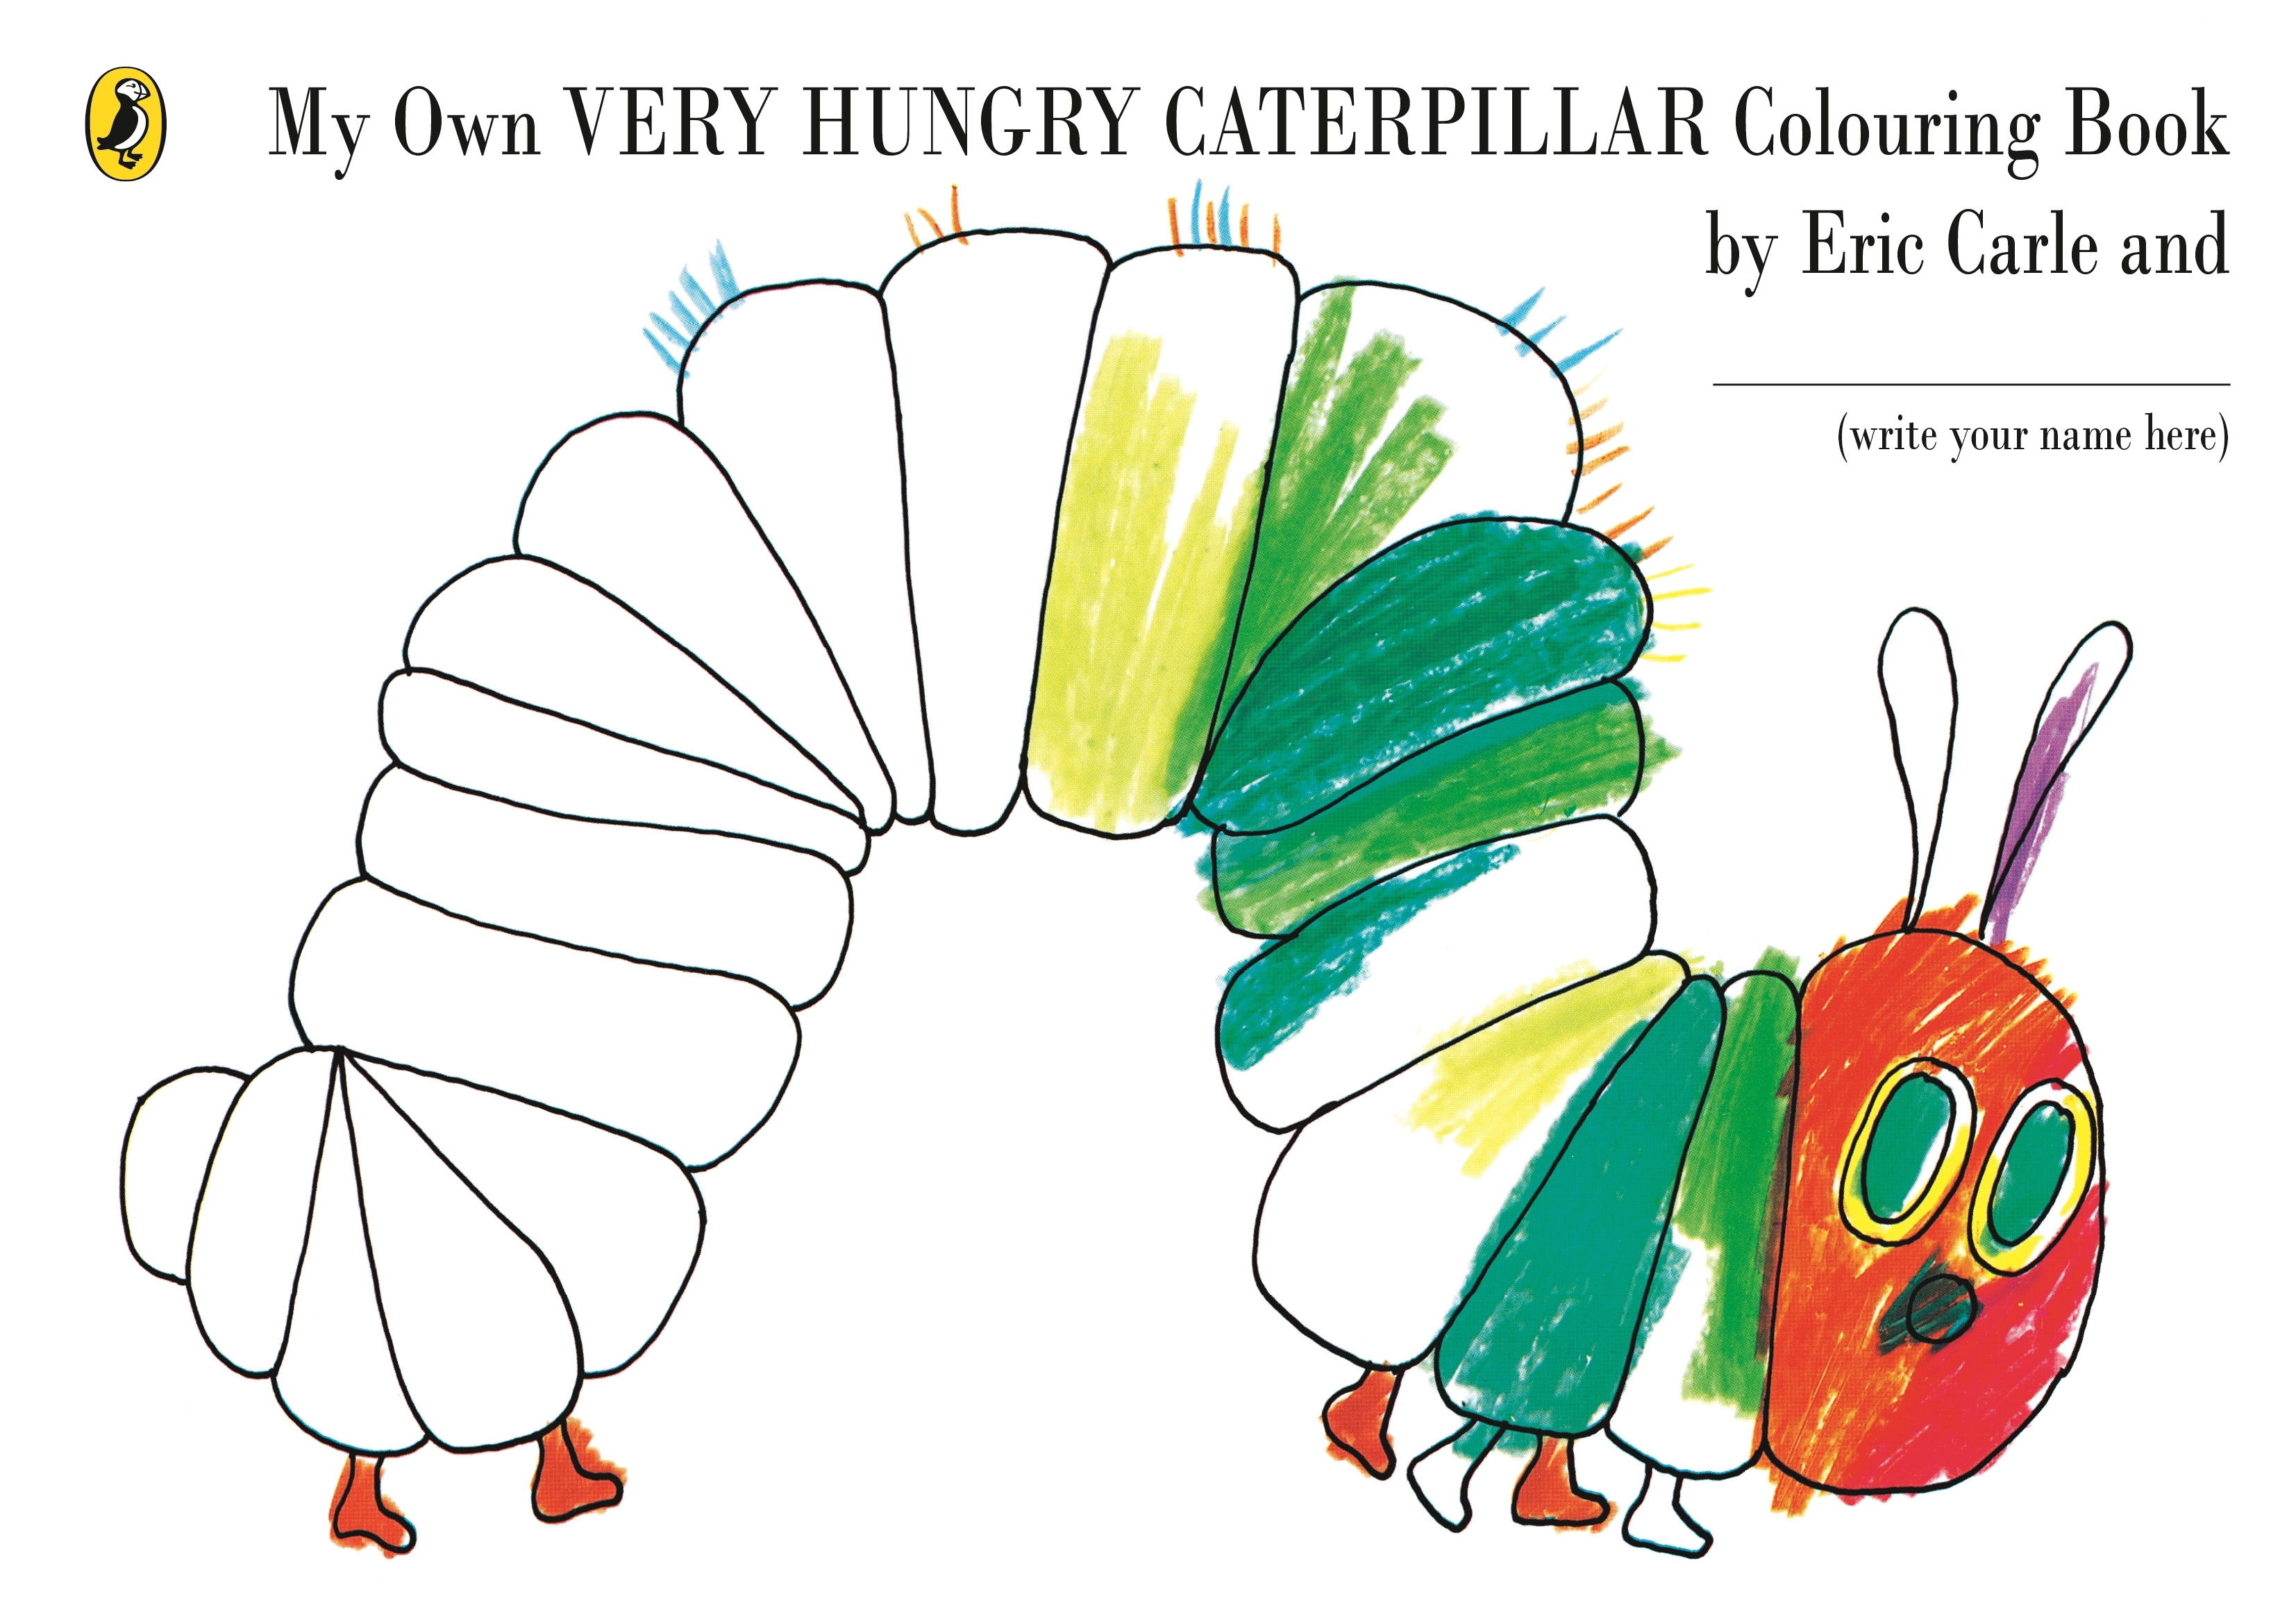 Book Cover:  My Own Very Hungry Caterpillar Colouring Book